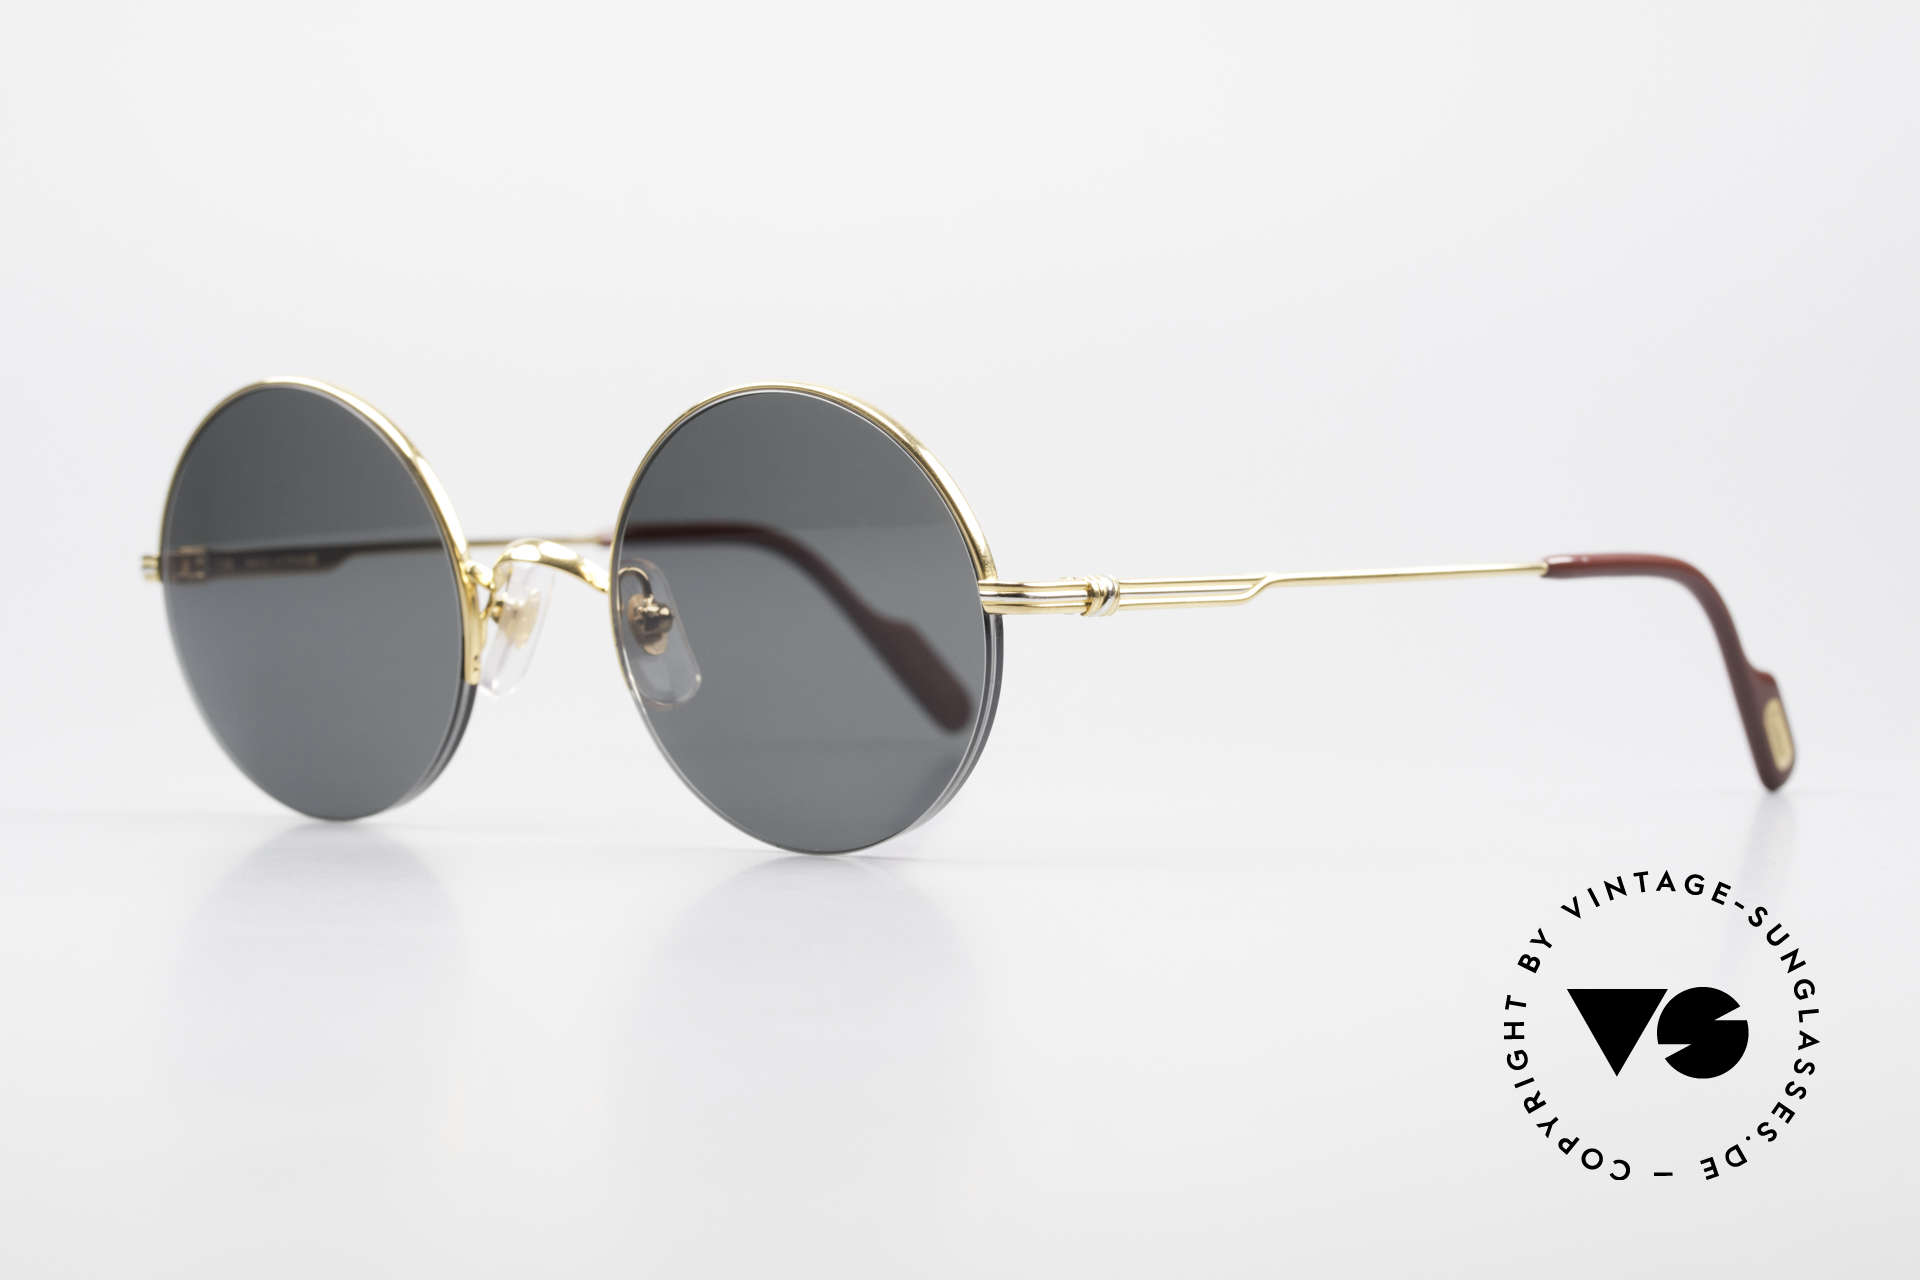 Cartier Mayfair Luxury Round Sunglasses 90's, exclusive design - simply timeless and unisex, Made for Men and Women